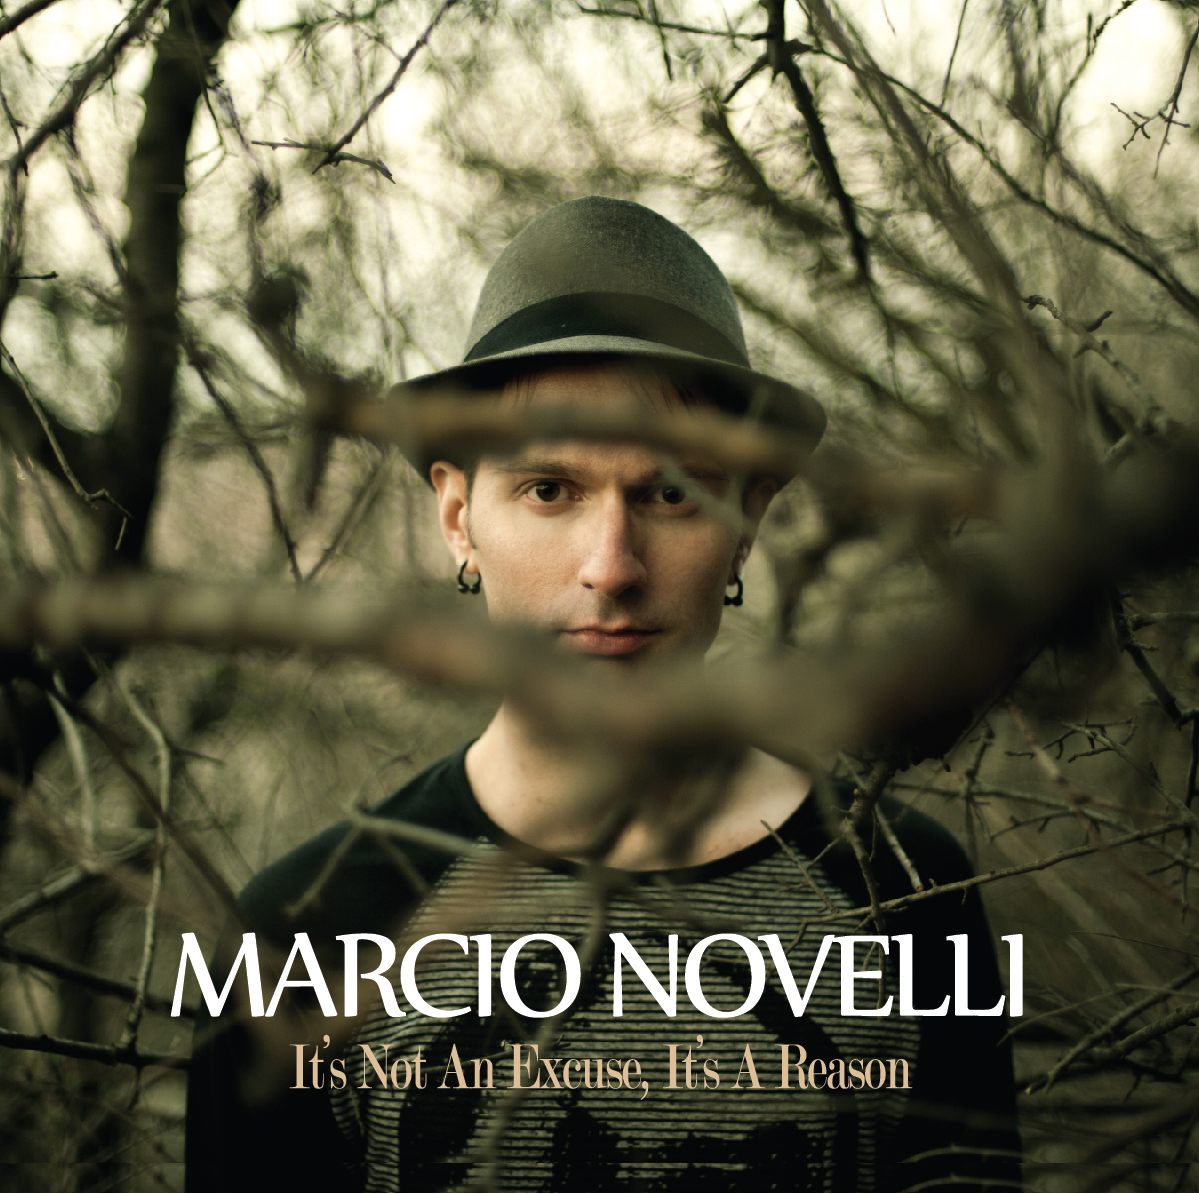 Marcio Novelli - It's Not An Excuse, It's A Reason (Album Cover)